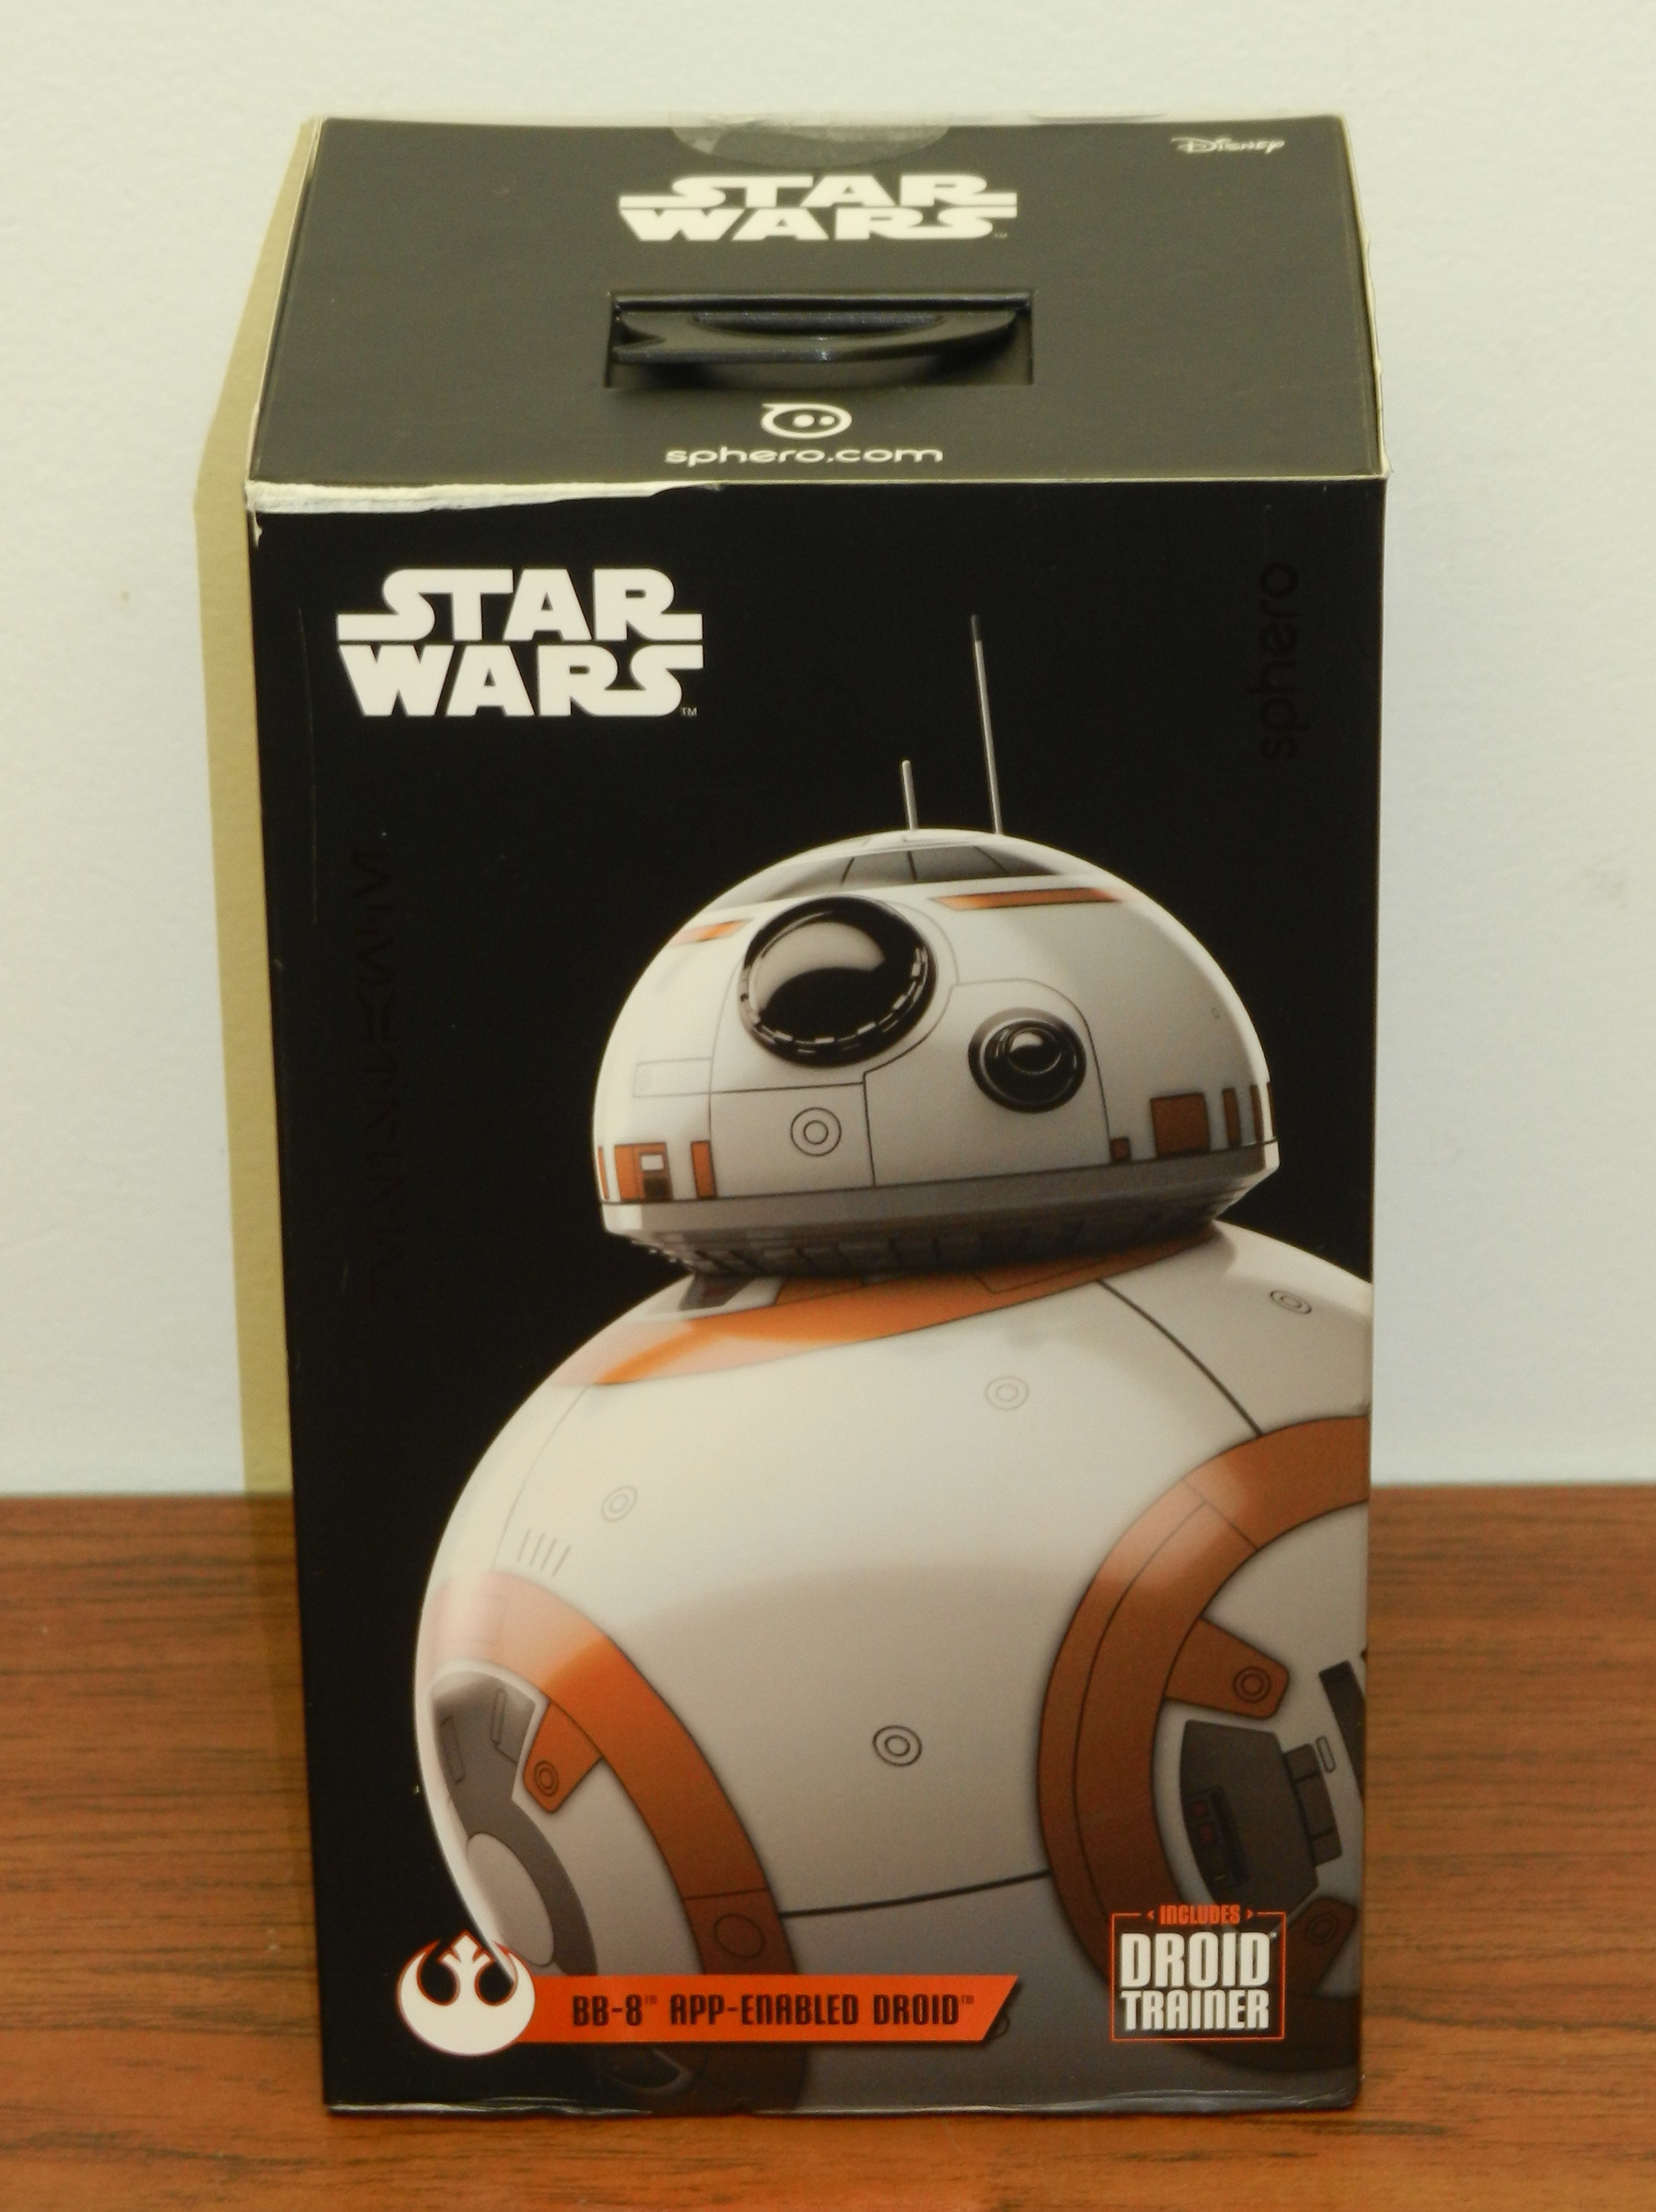 BB-8 droid App Enabled Sphero STAR WARS w Droid Trainer